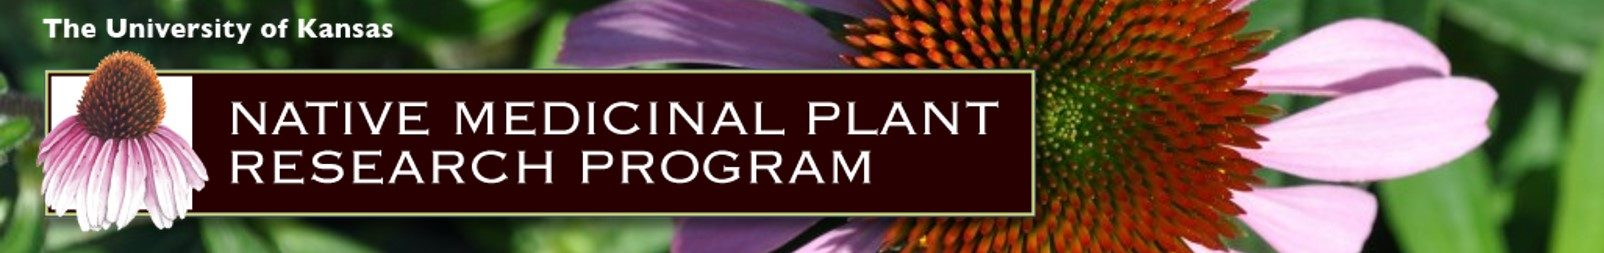 Native Plant Ethnobotany Research Program